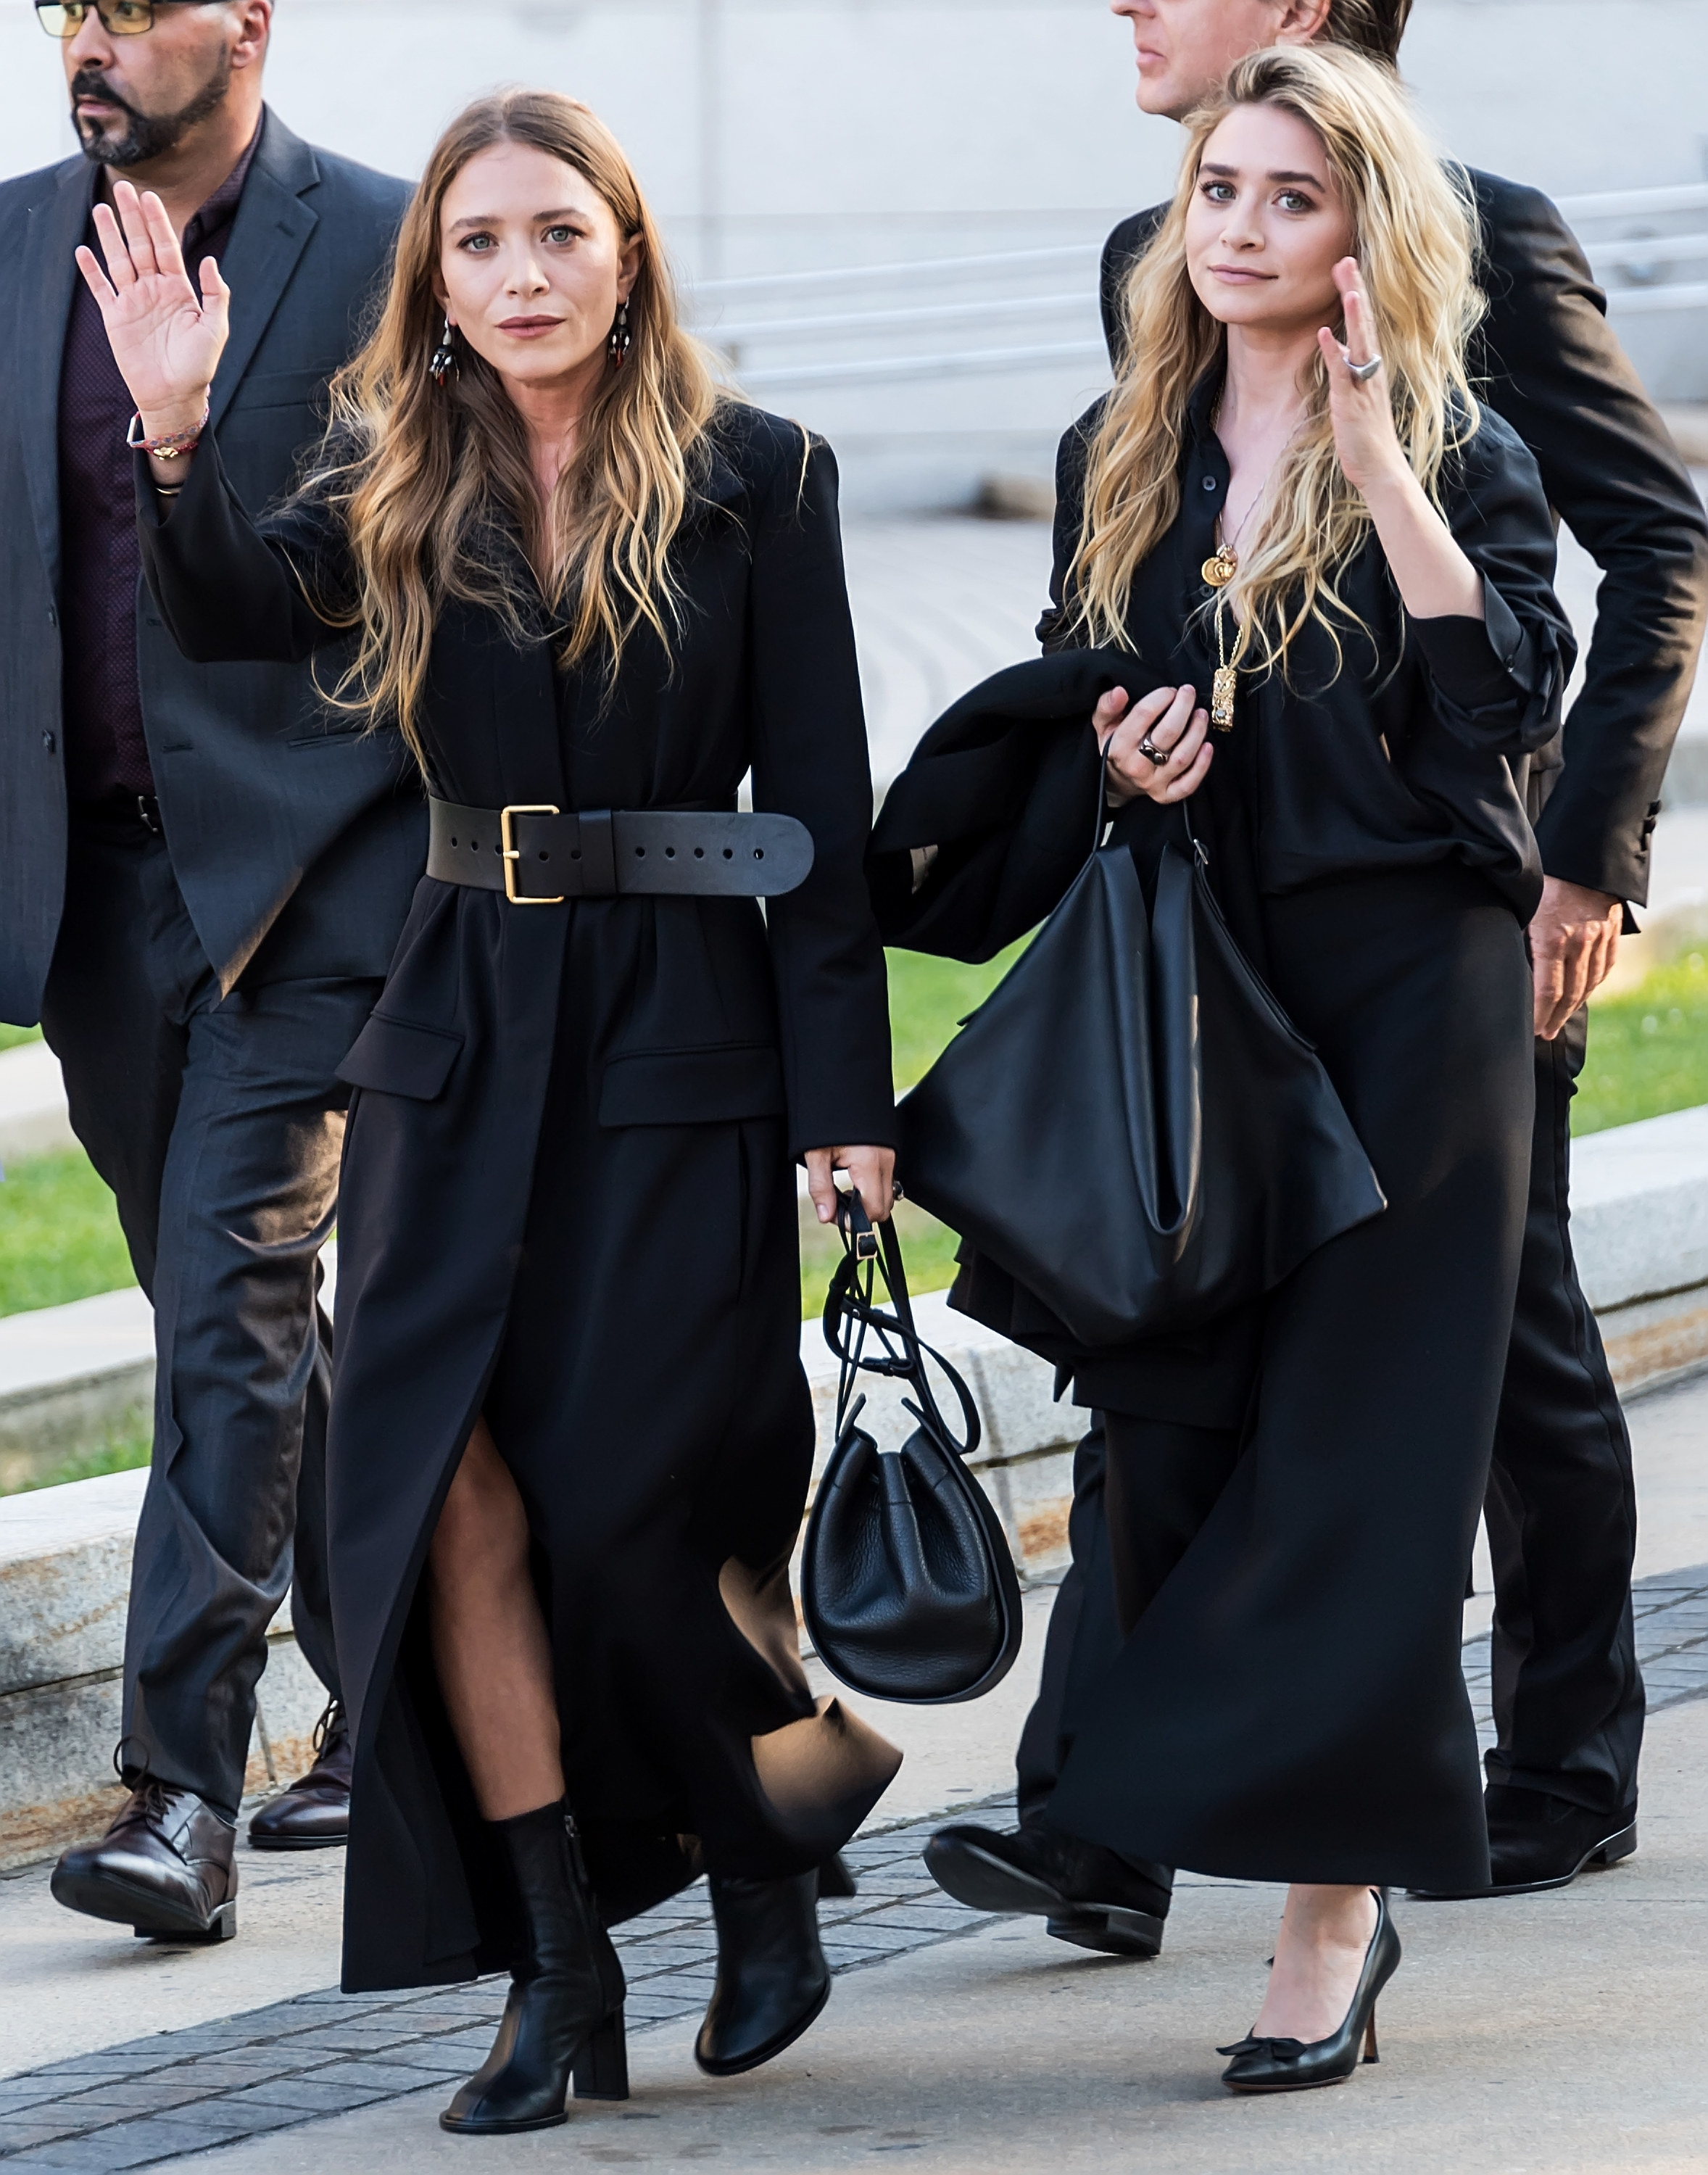 Mary-Kate, in a black coat, and Ashley, in a black dress, arrive at the CFDA Fashion Awards in 2018